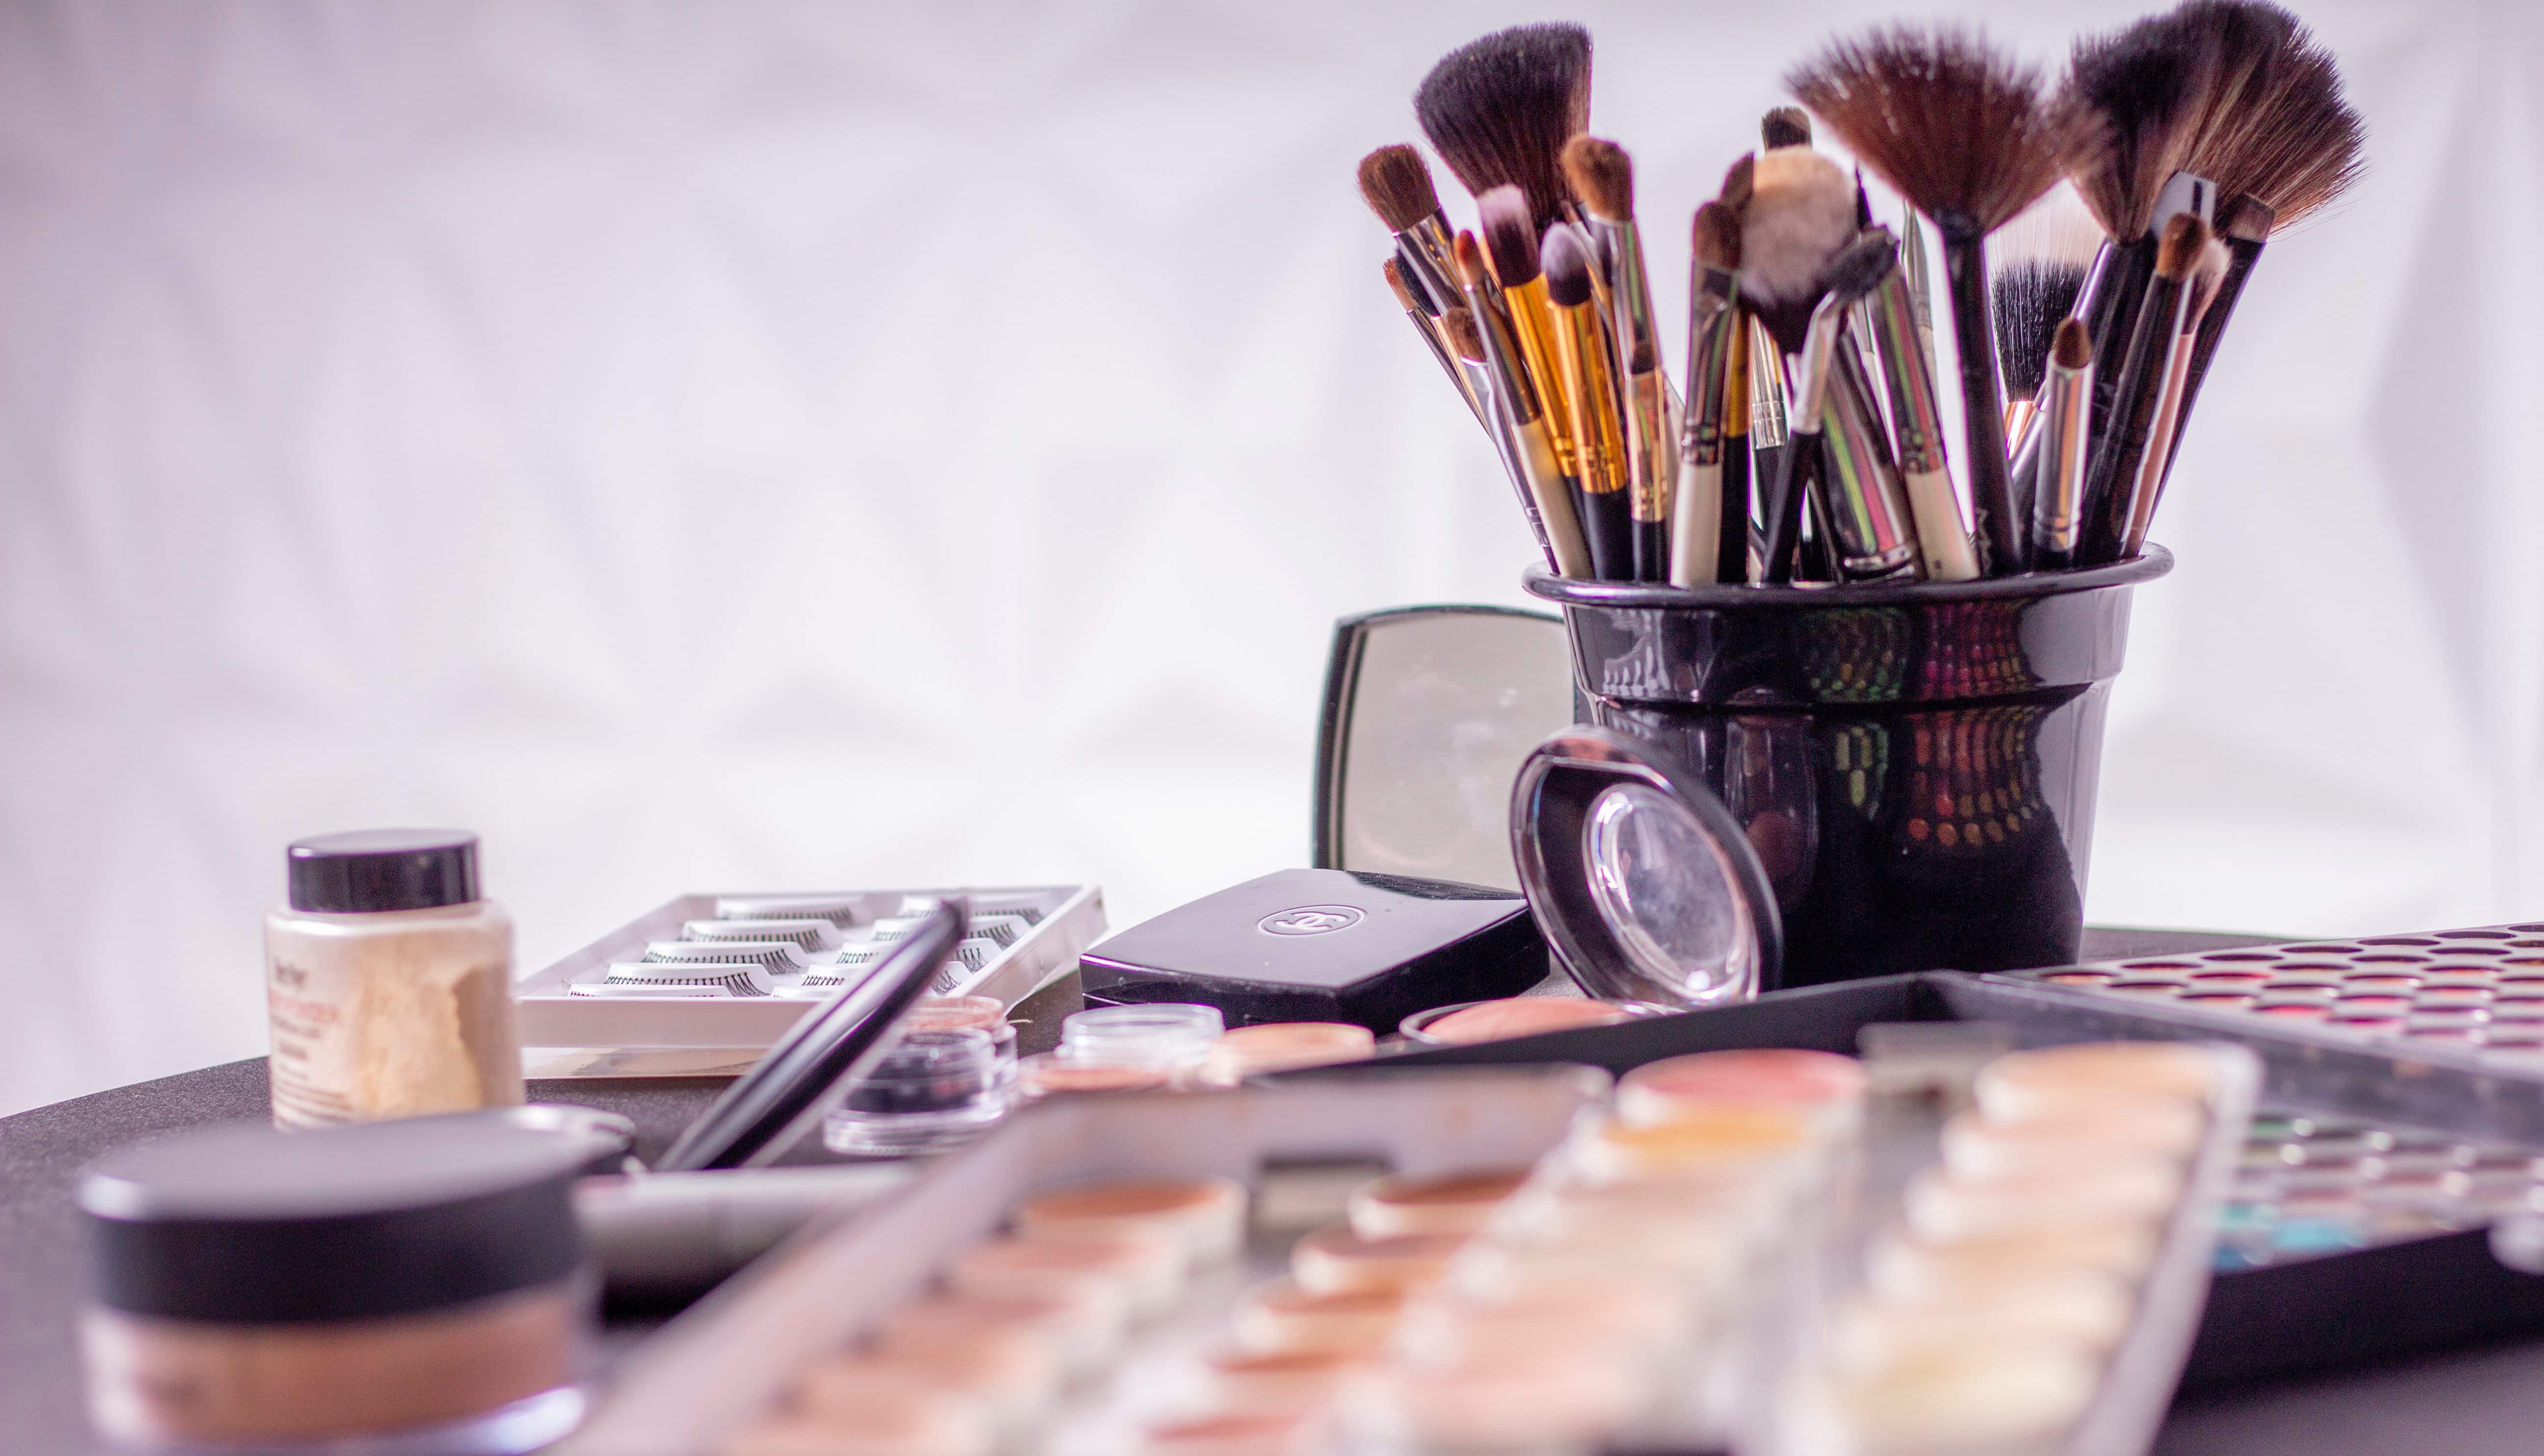 Top 8 Beauty Procedures That Can Never Get Done On Themselves 6